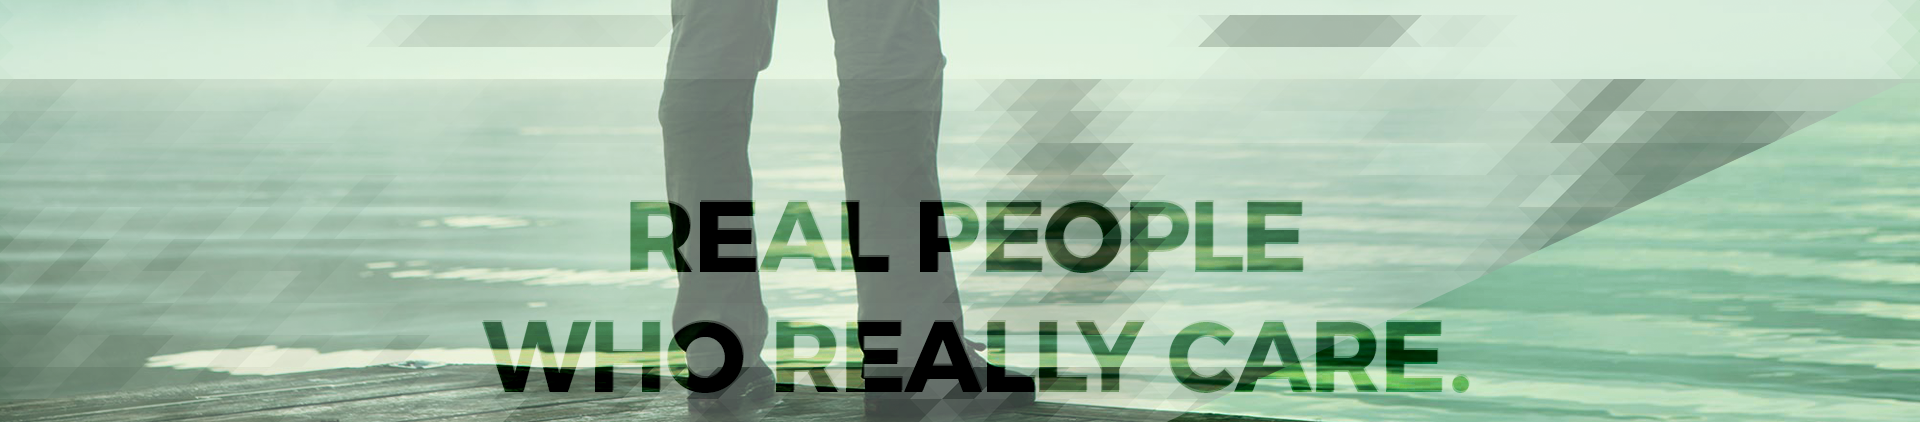 Real People Who Really Care